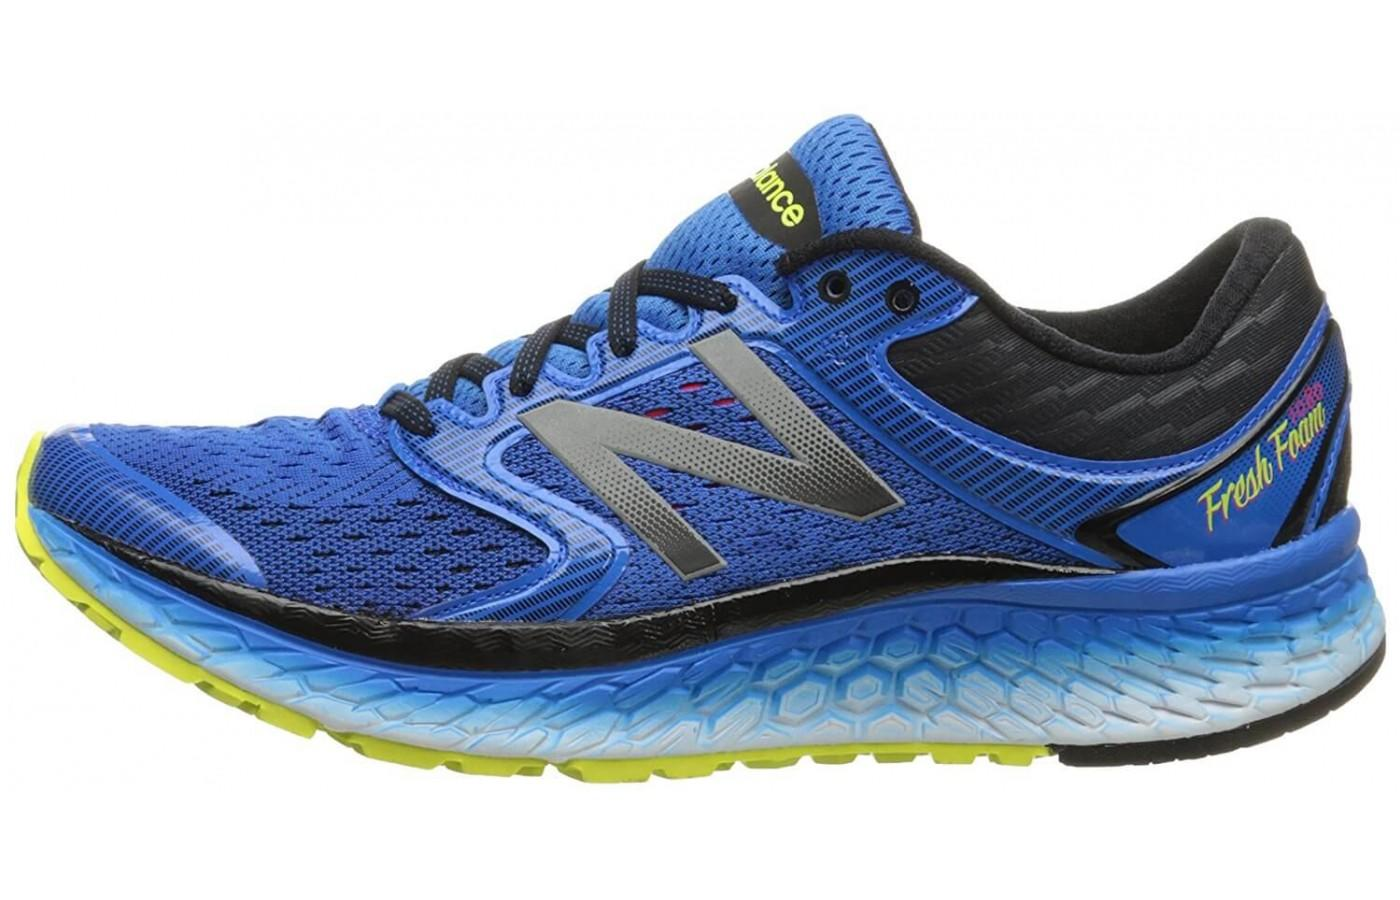 Exterior side view of the New Balance Fresh Foam 1080 v7